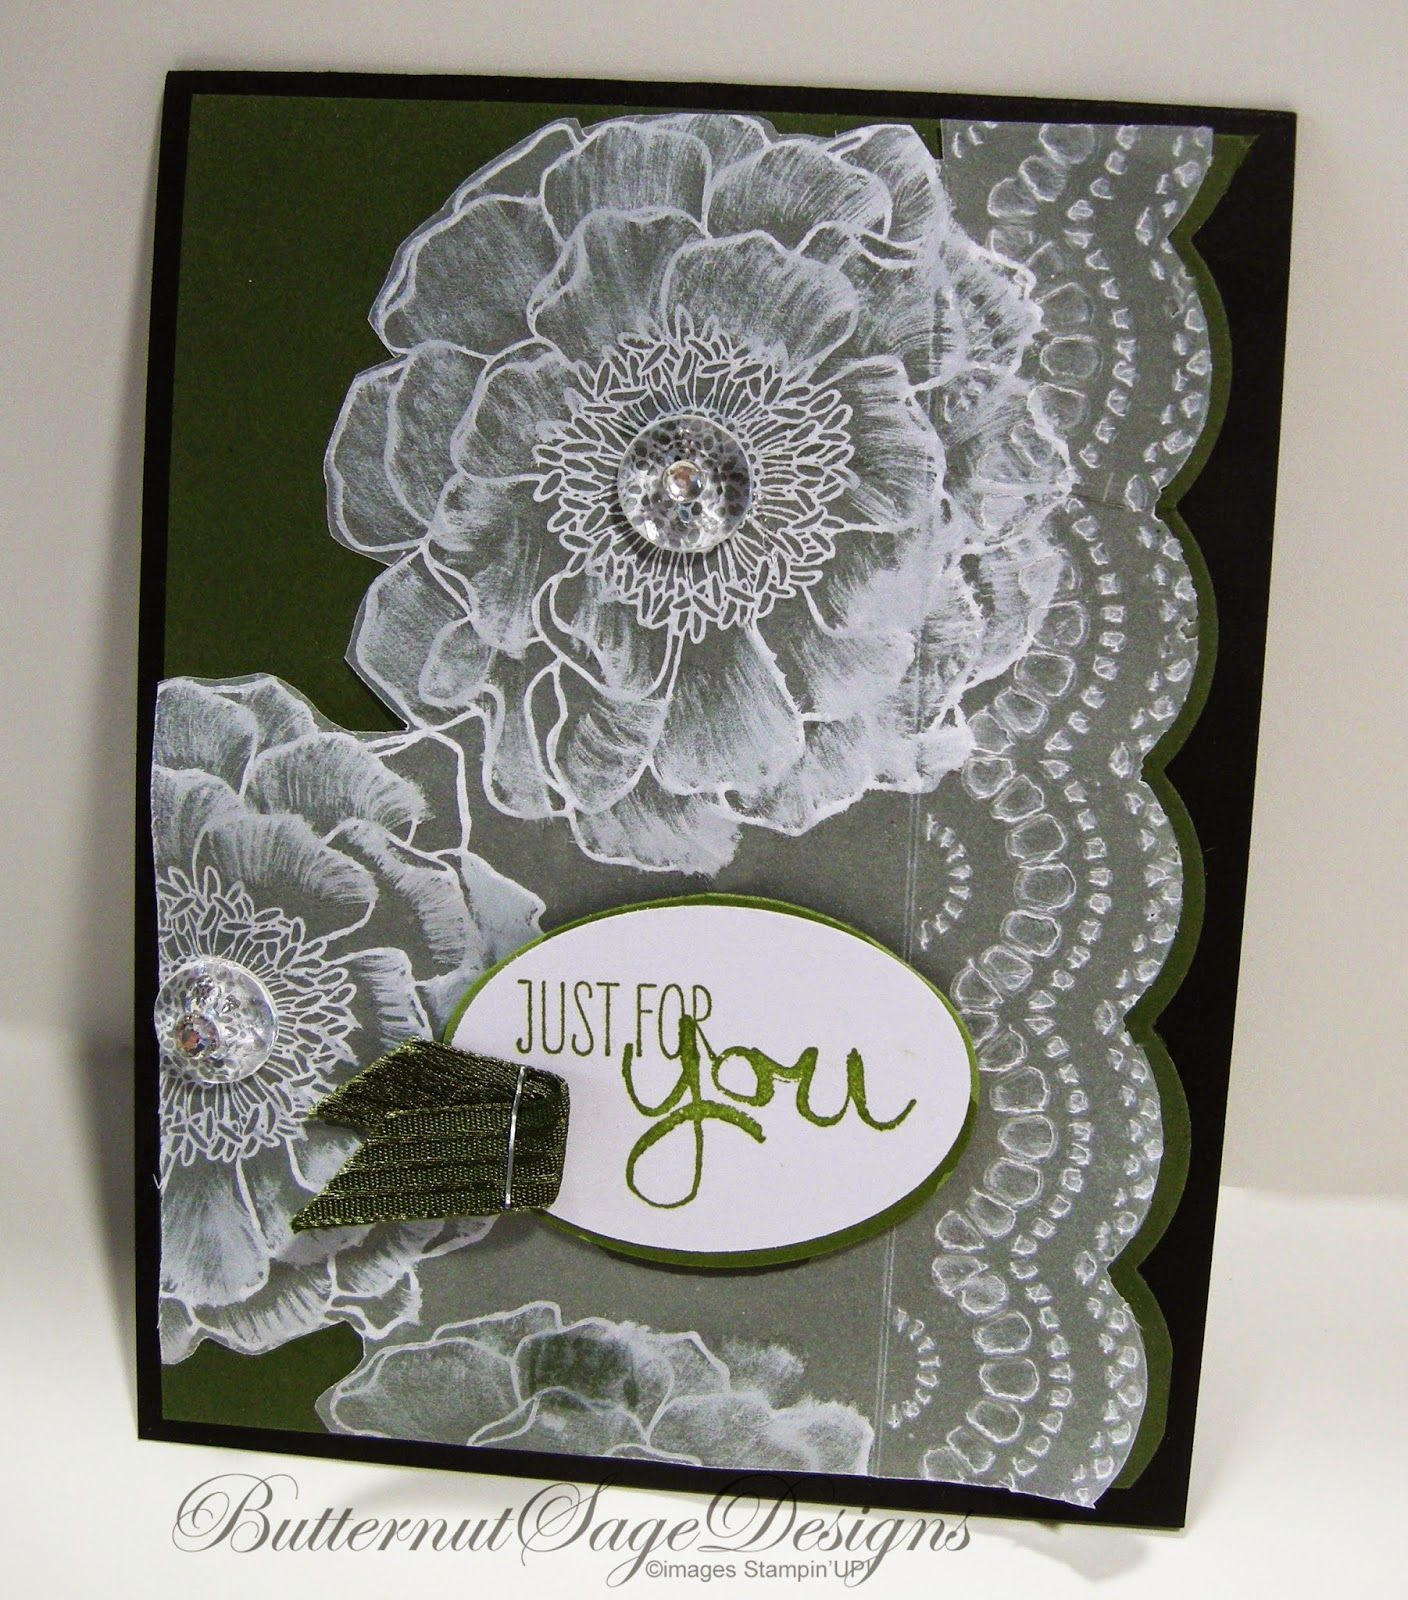 Butternut sage designs vellum blended bloom stampin up vellum blended bloom flower cardspaper mightylinksfo